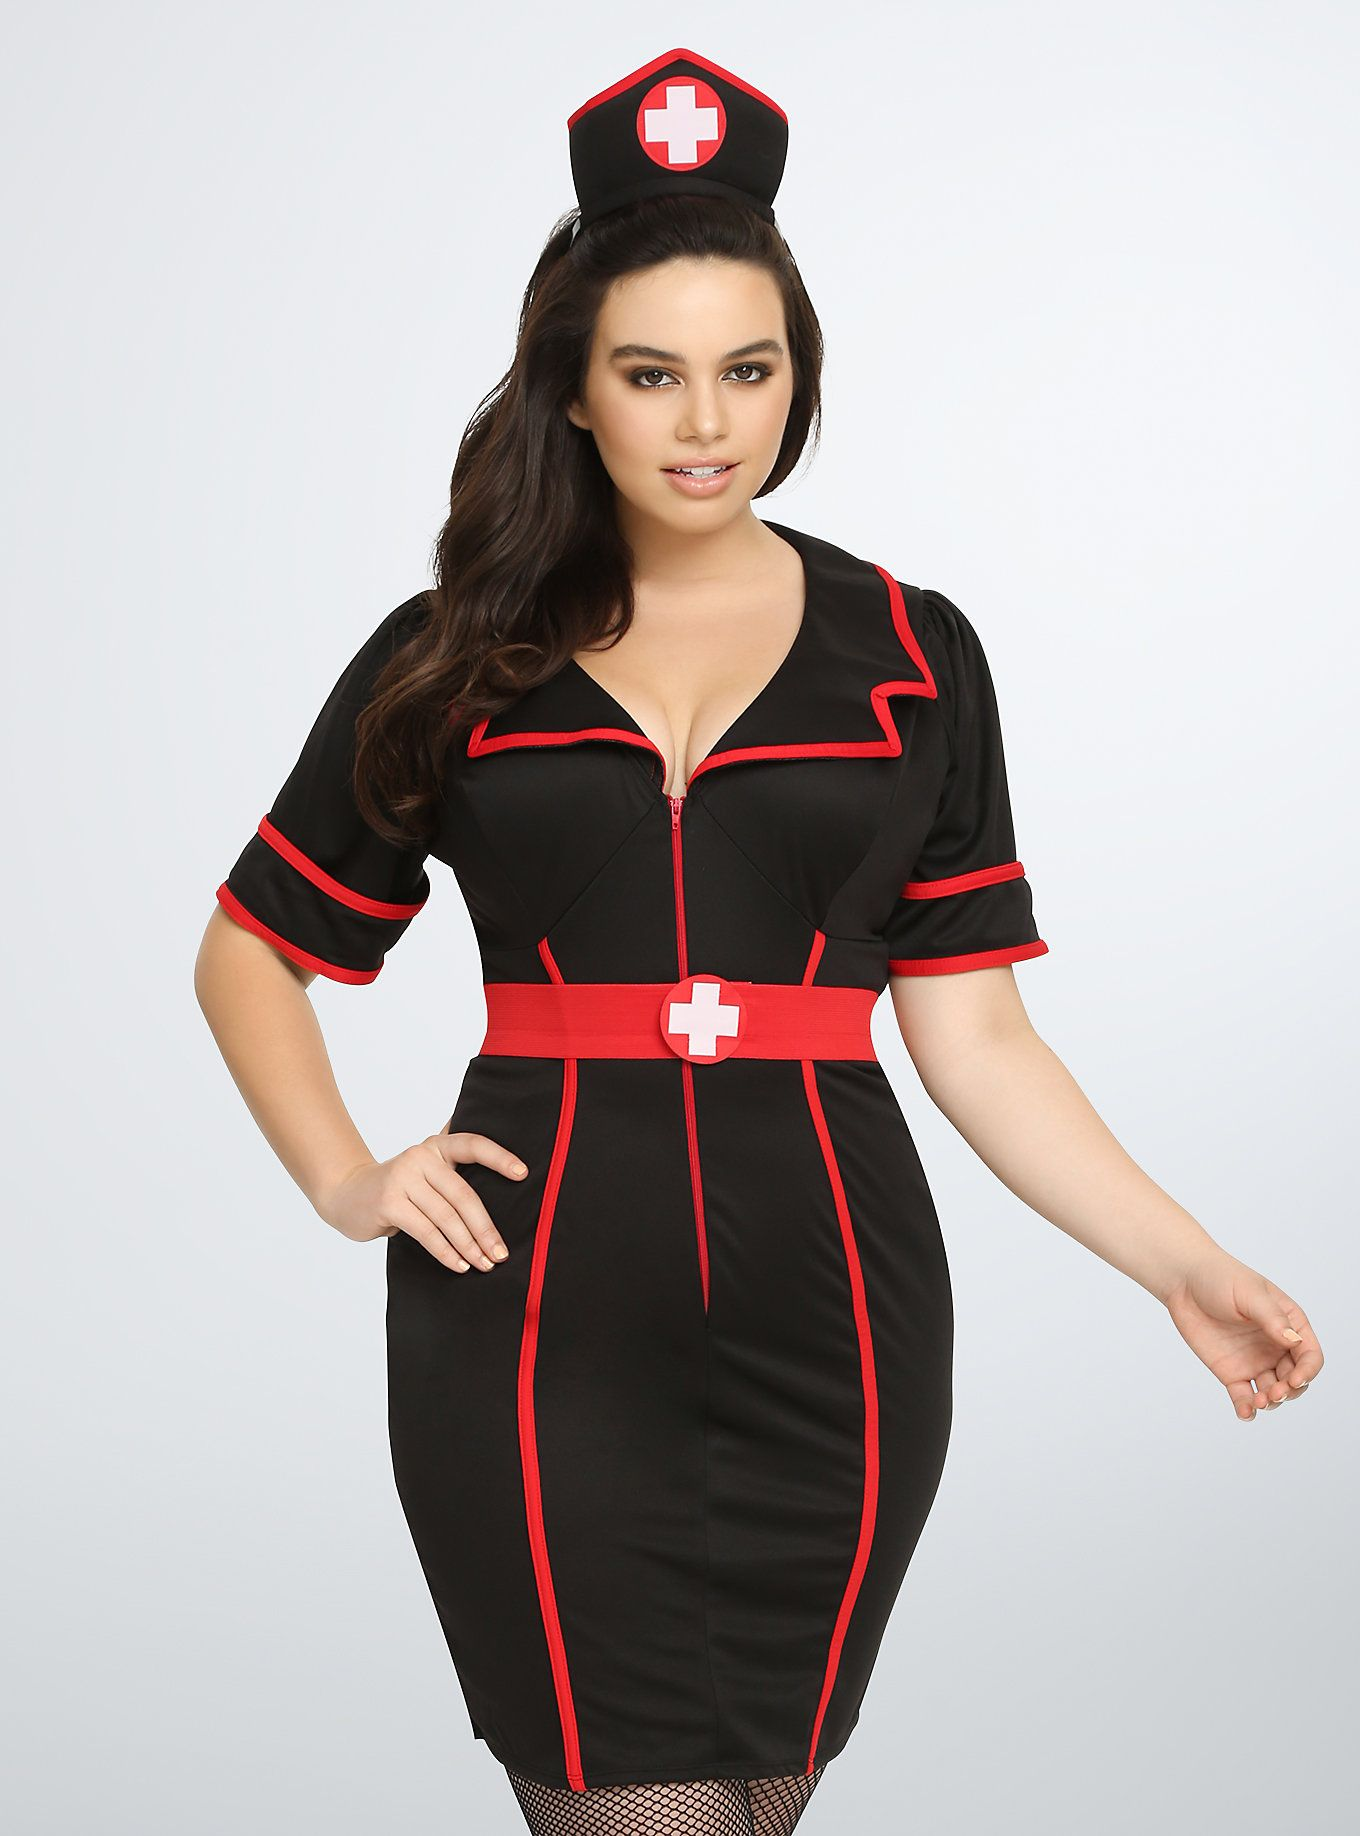 Night Nurse Costume Dress Torrid Nurse costume